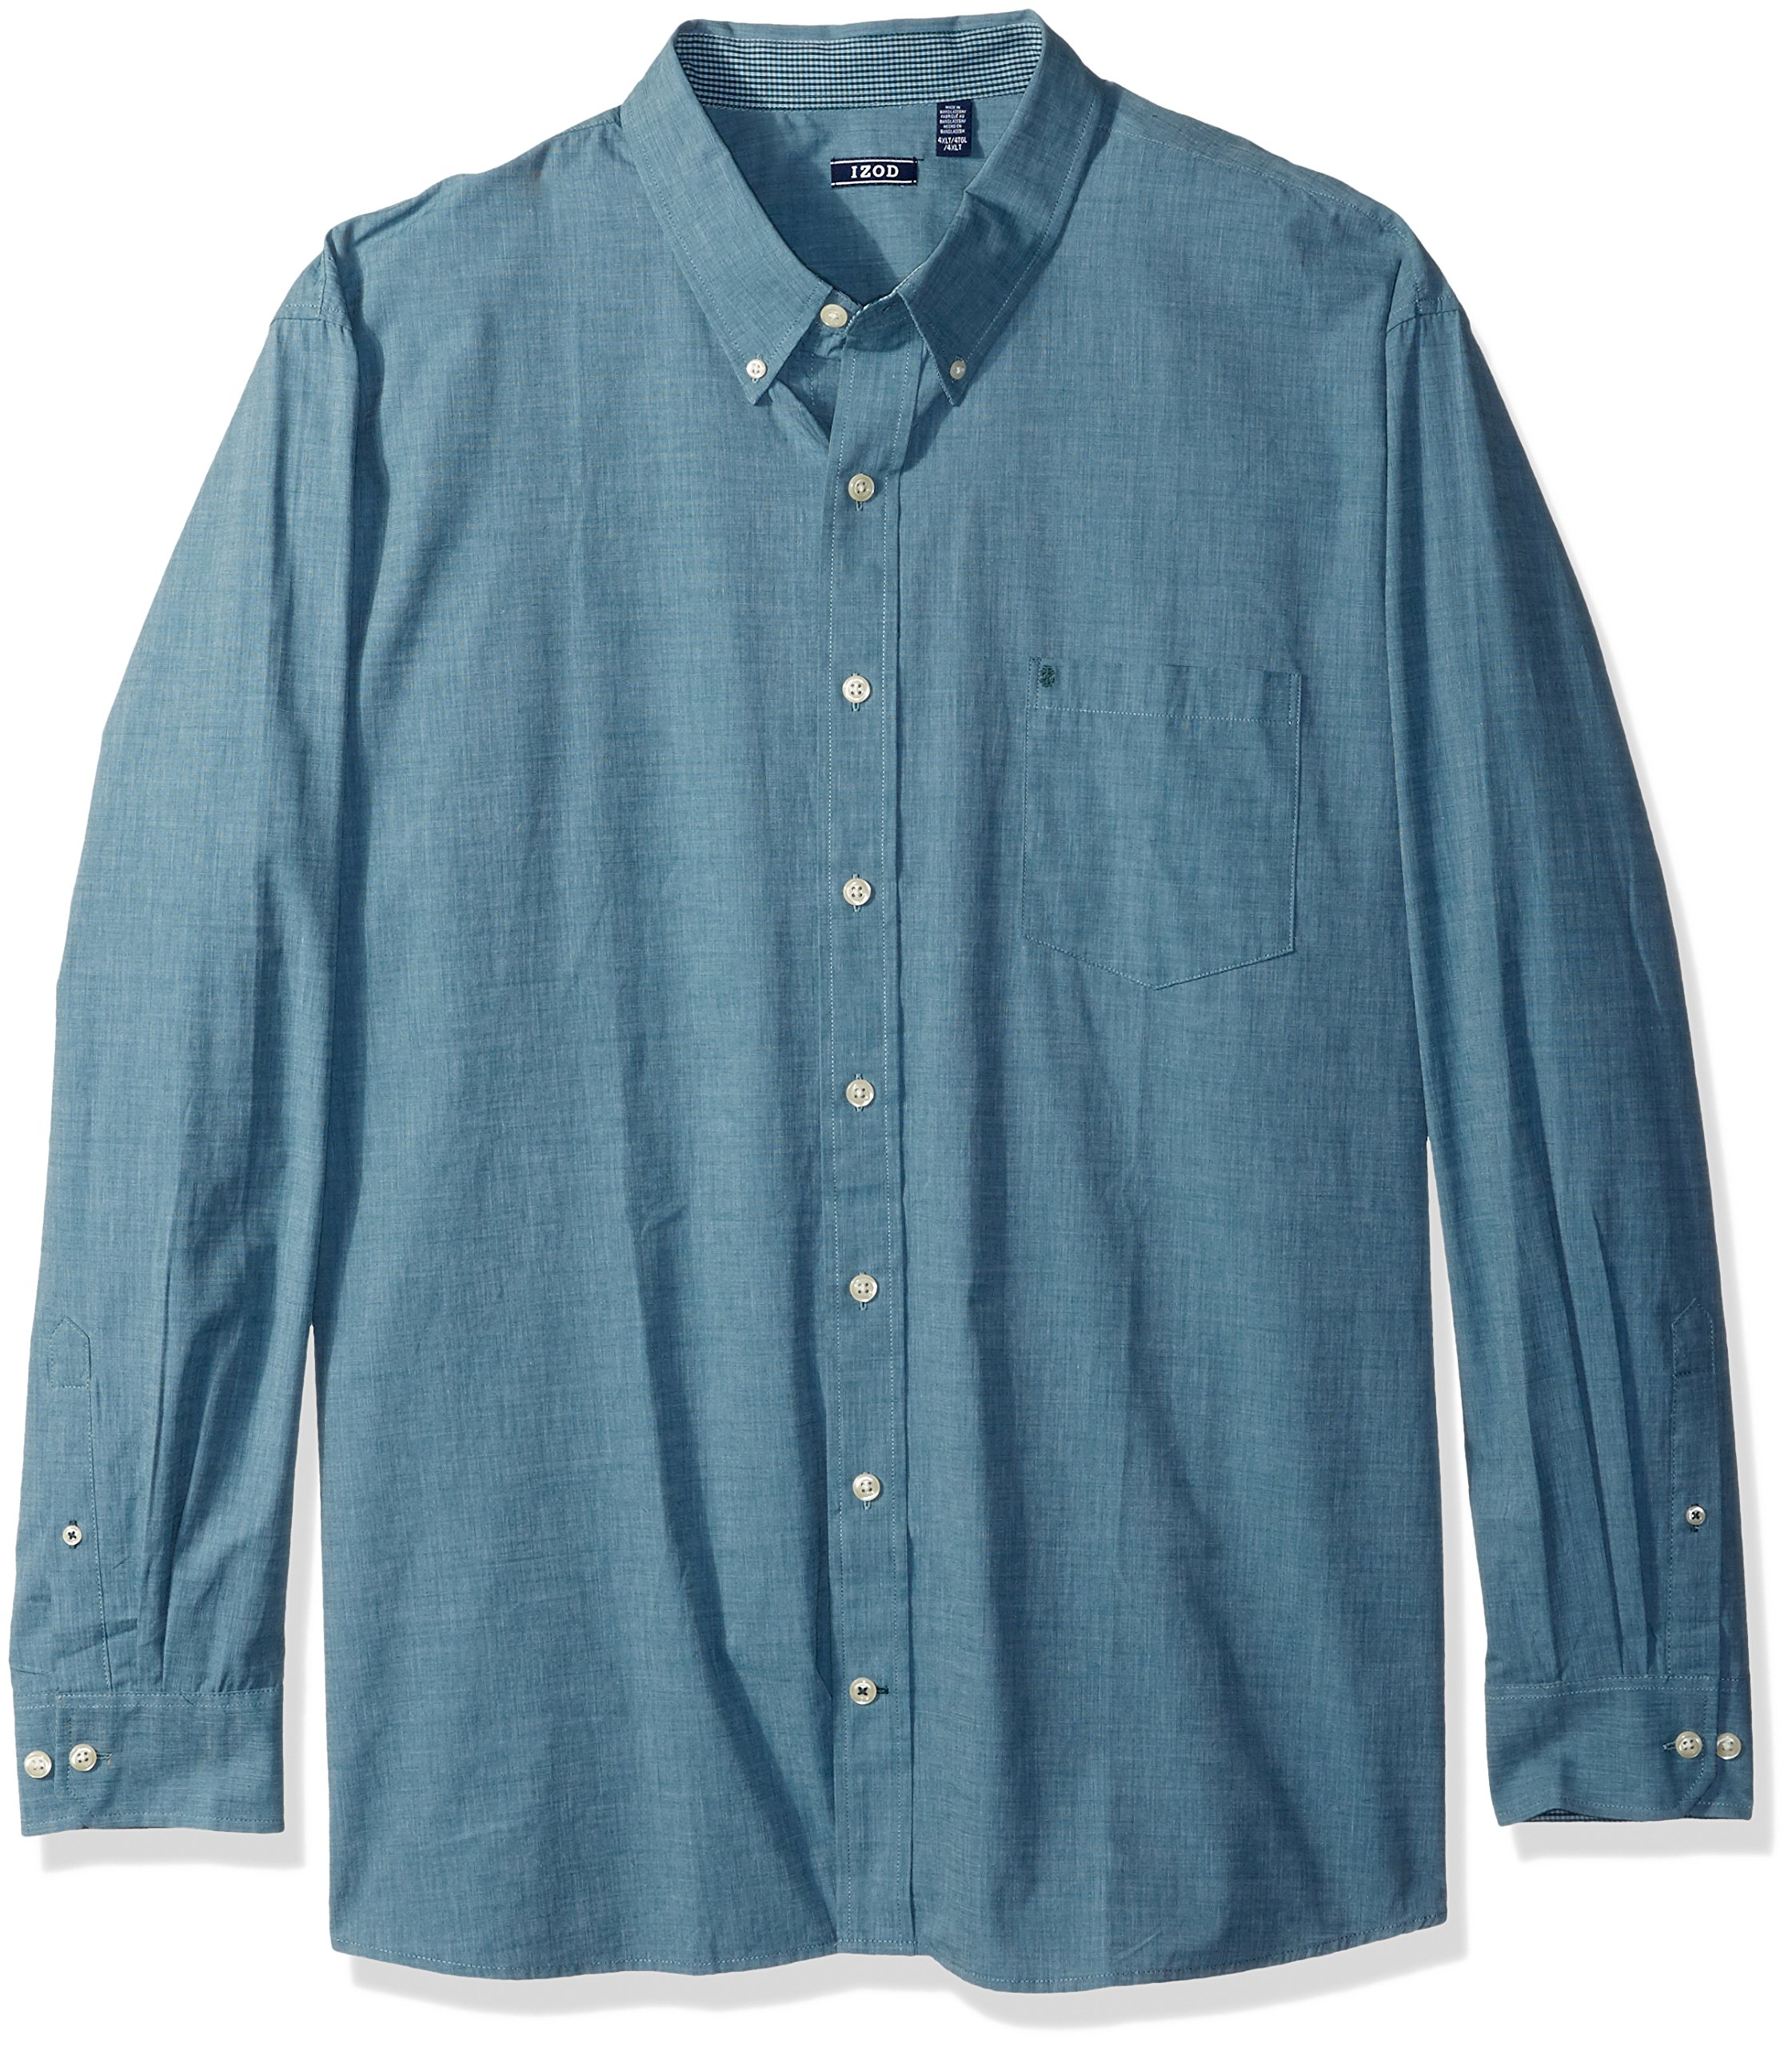 IZOD Men's Size Essential Check Long Sleeve Shirt (Big Slim), Deep Teal, 5X-Large Tall